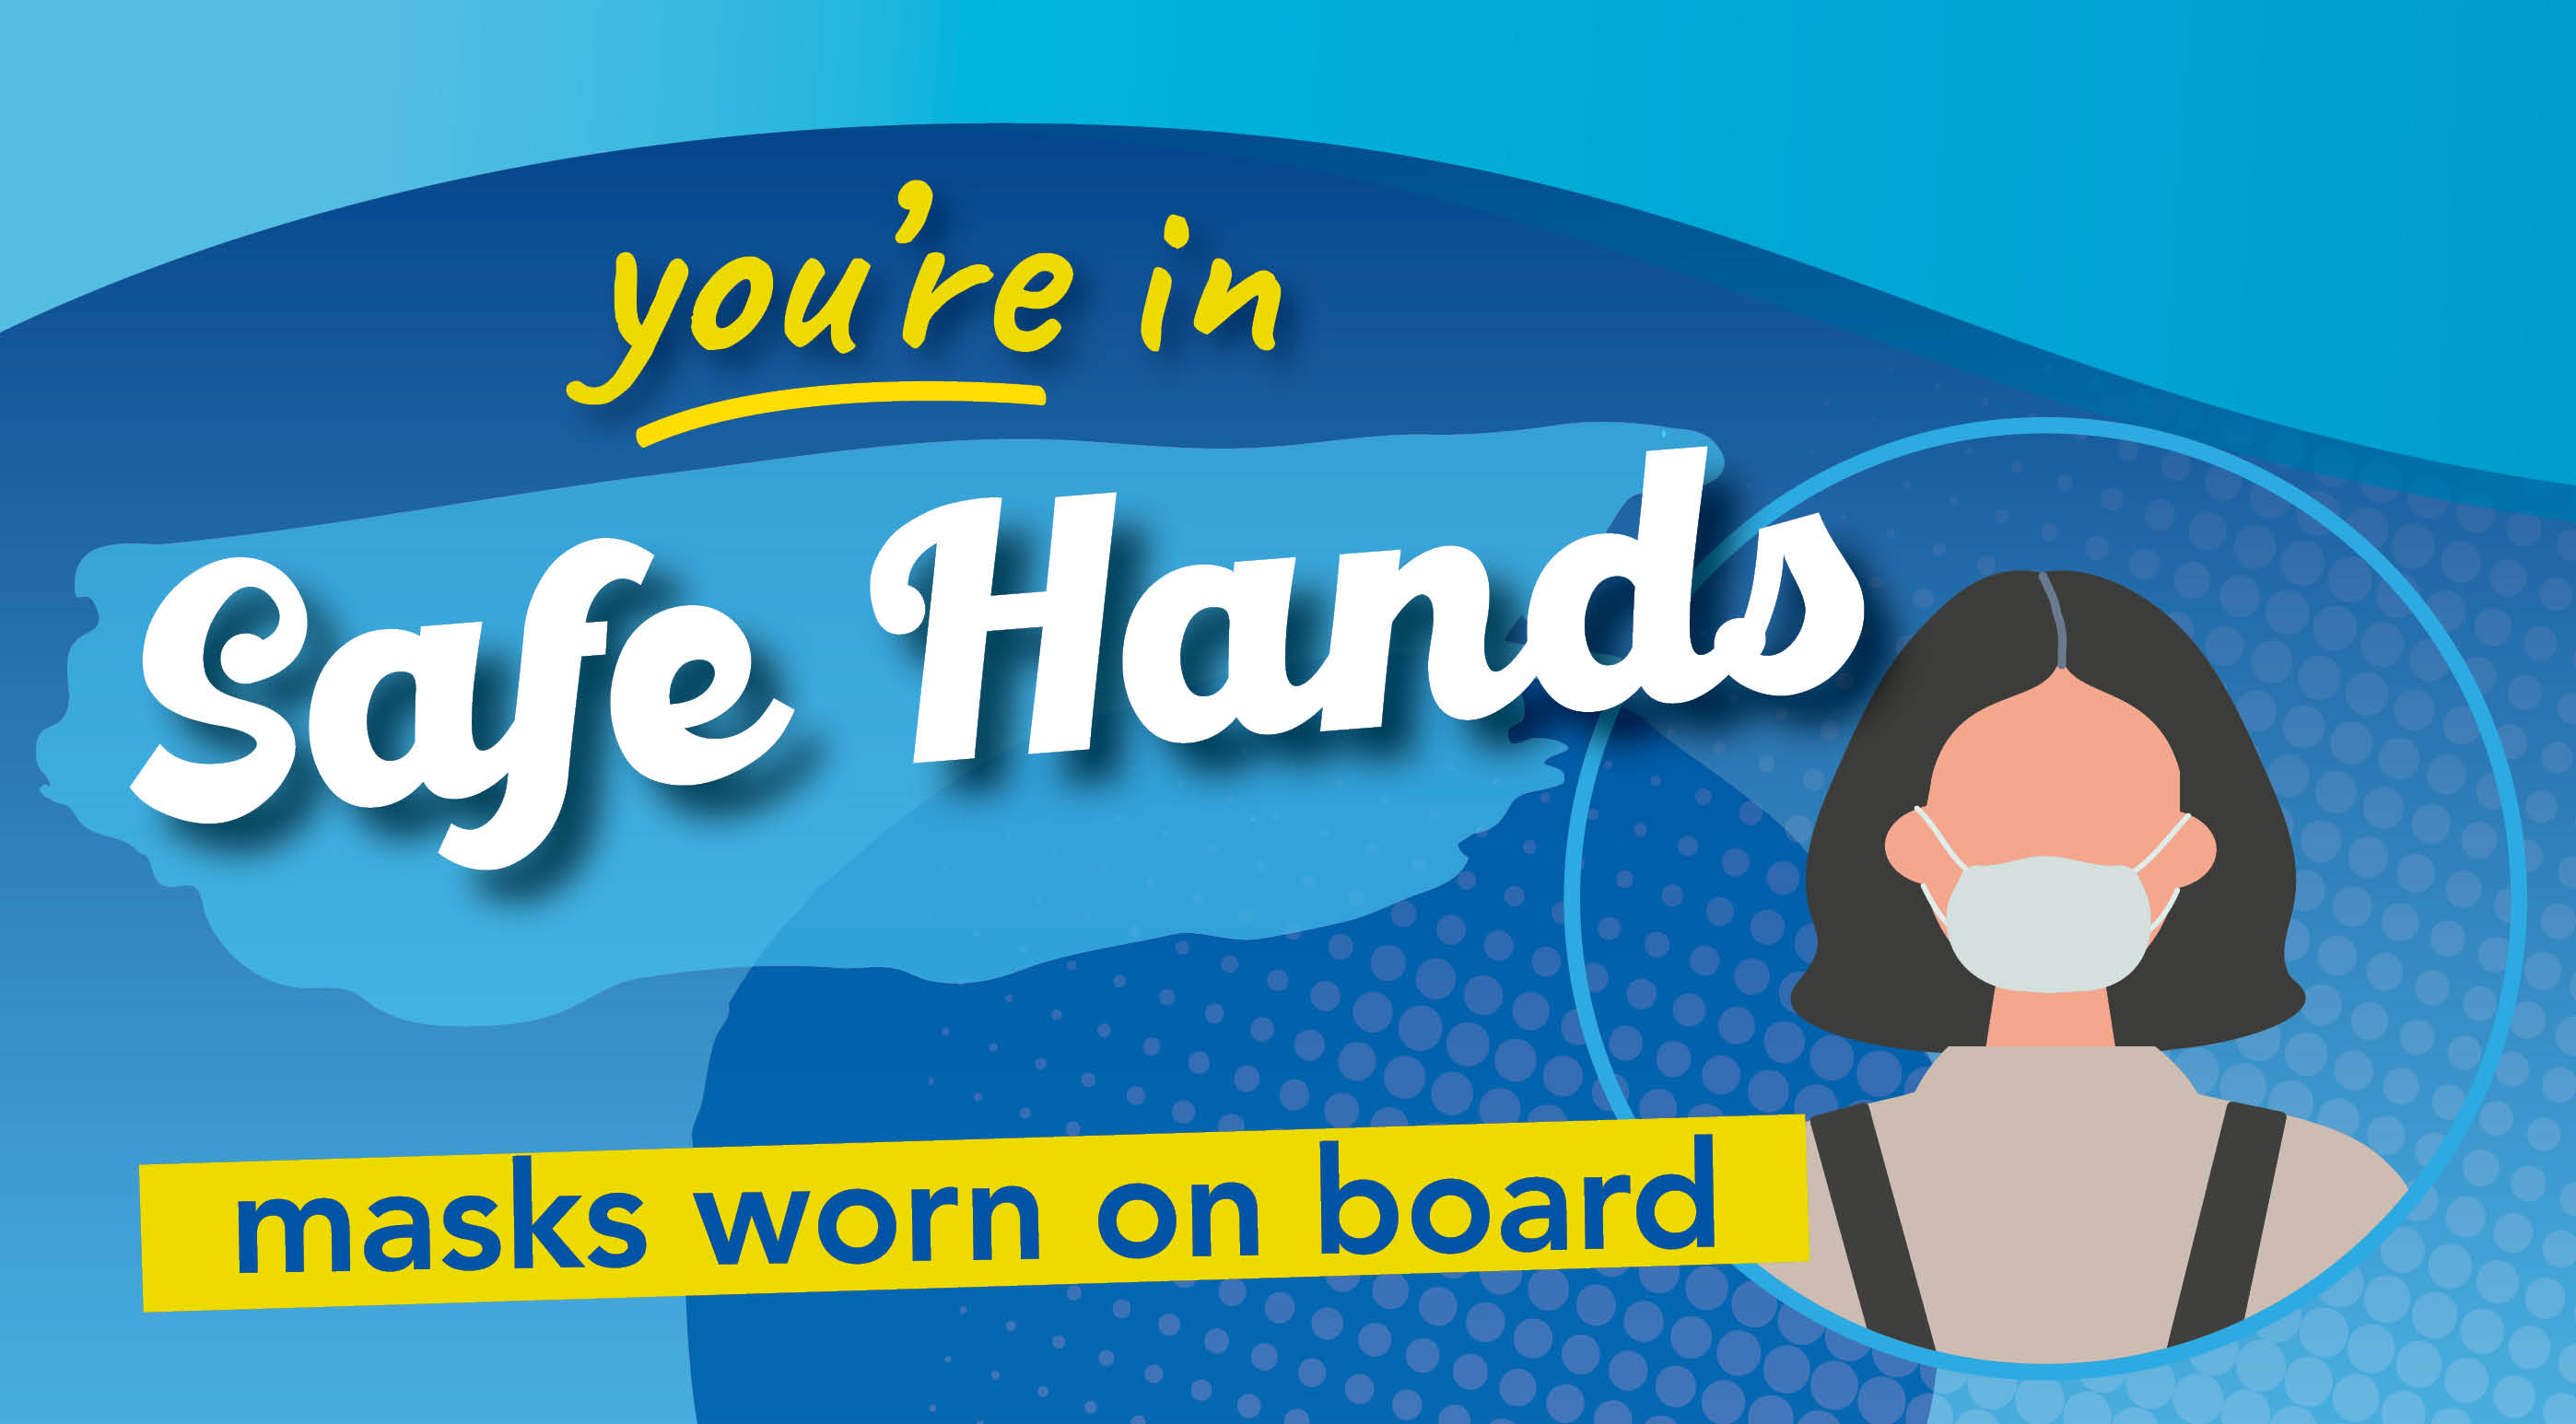 you're in safe hands masks on board and illustration of lady wearing a mask